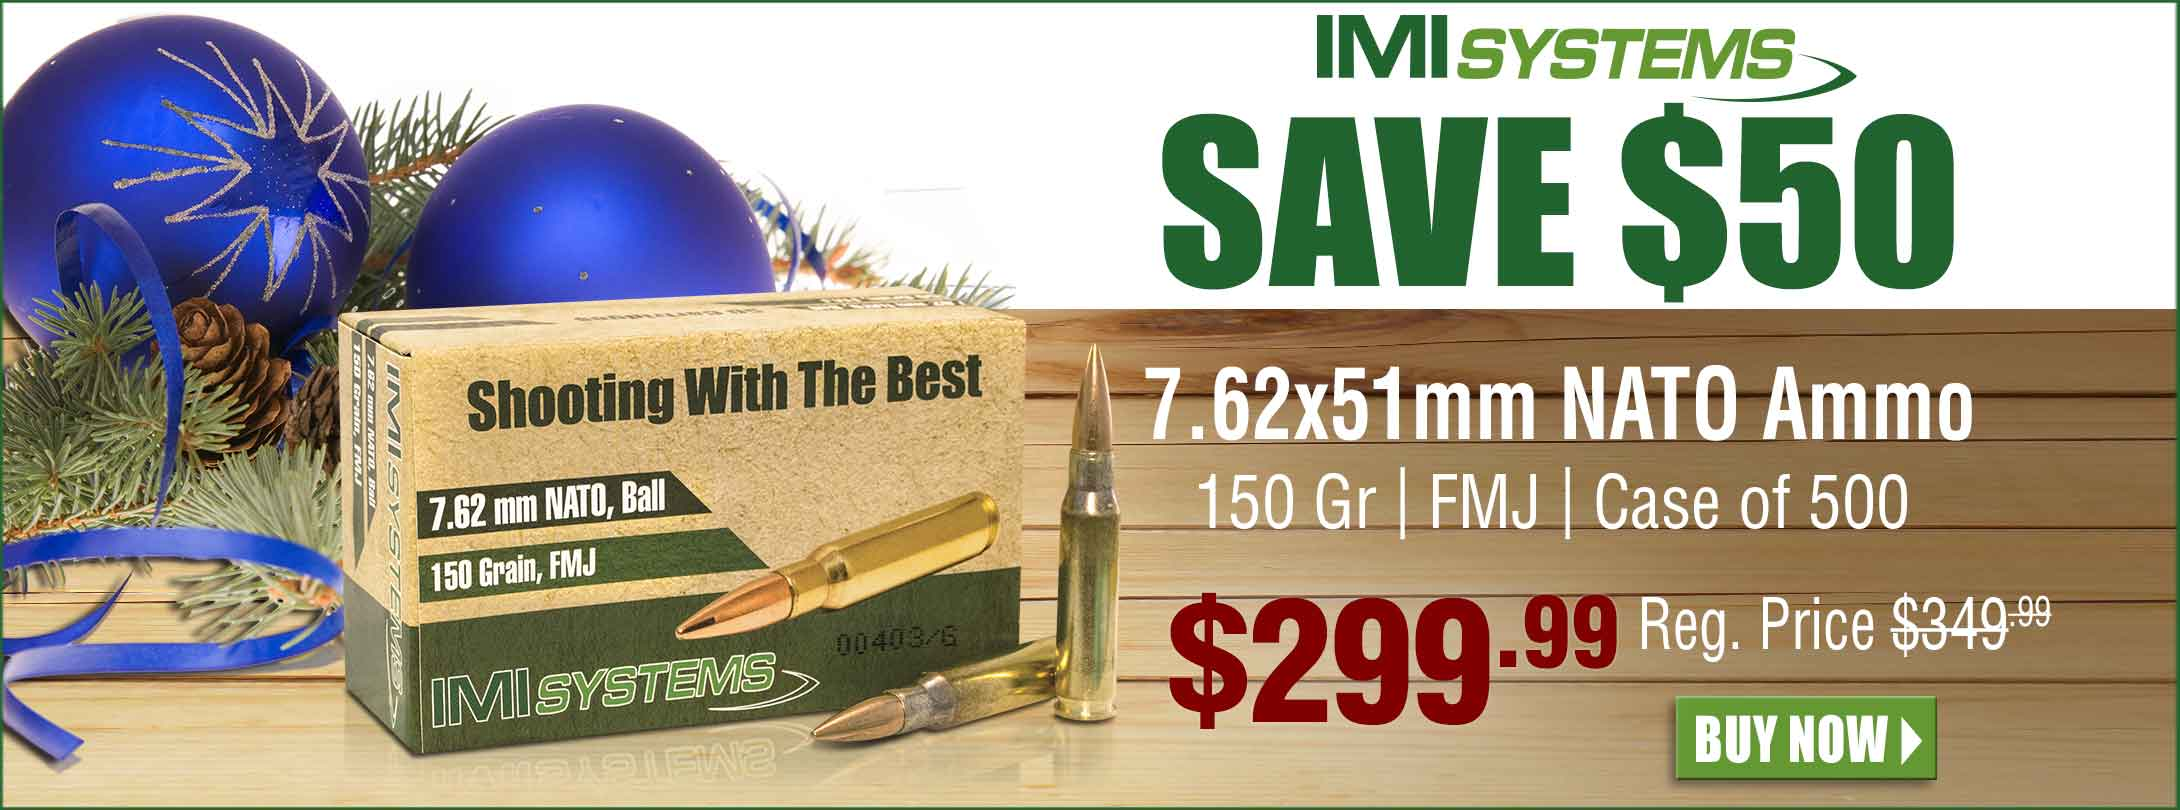 Save $50 on IMI 7.62x51mm NATO Ammo Case of 500